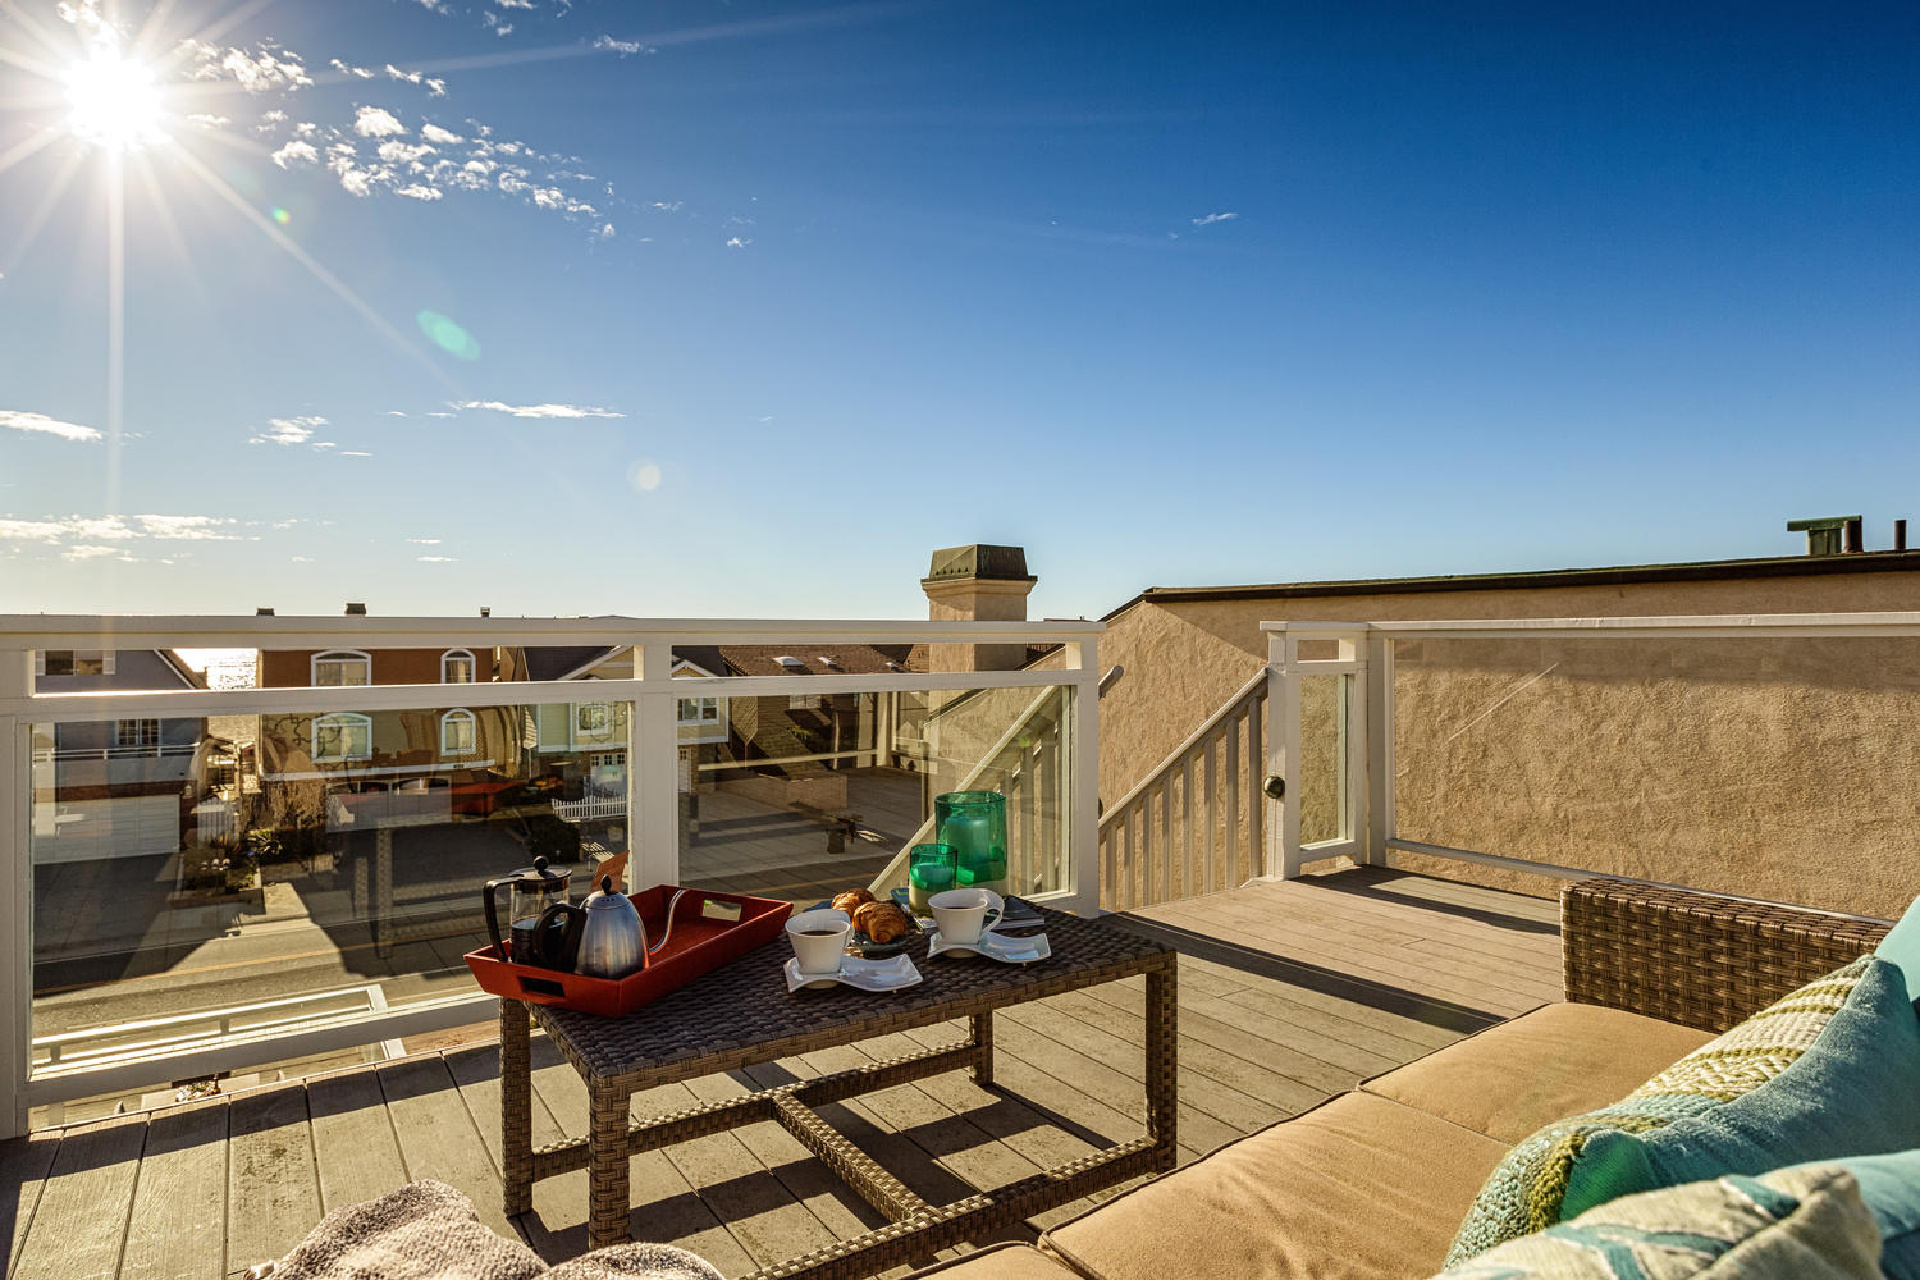 https://www.addressrealestate.com/media/images/blogs/38/2/b_23-1408-ocean-dr-oxnard-ca-93035-mls-size-023-17-rooftop-patio-1500x1000-72dpi.jpg